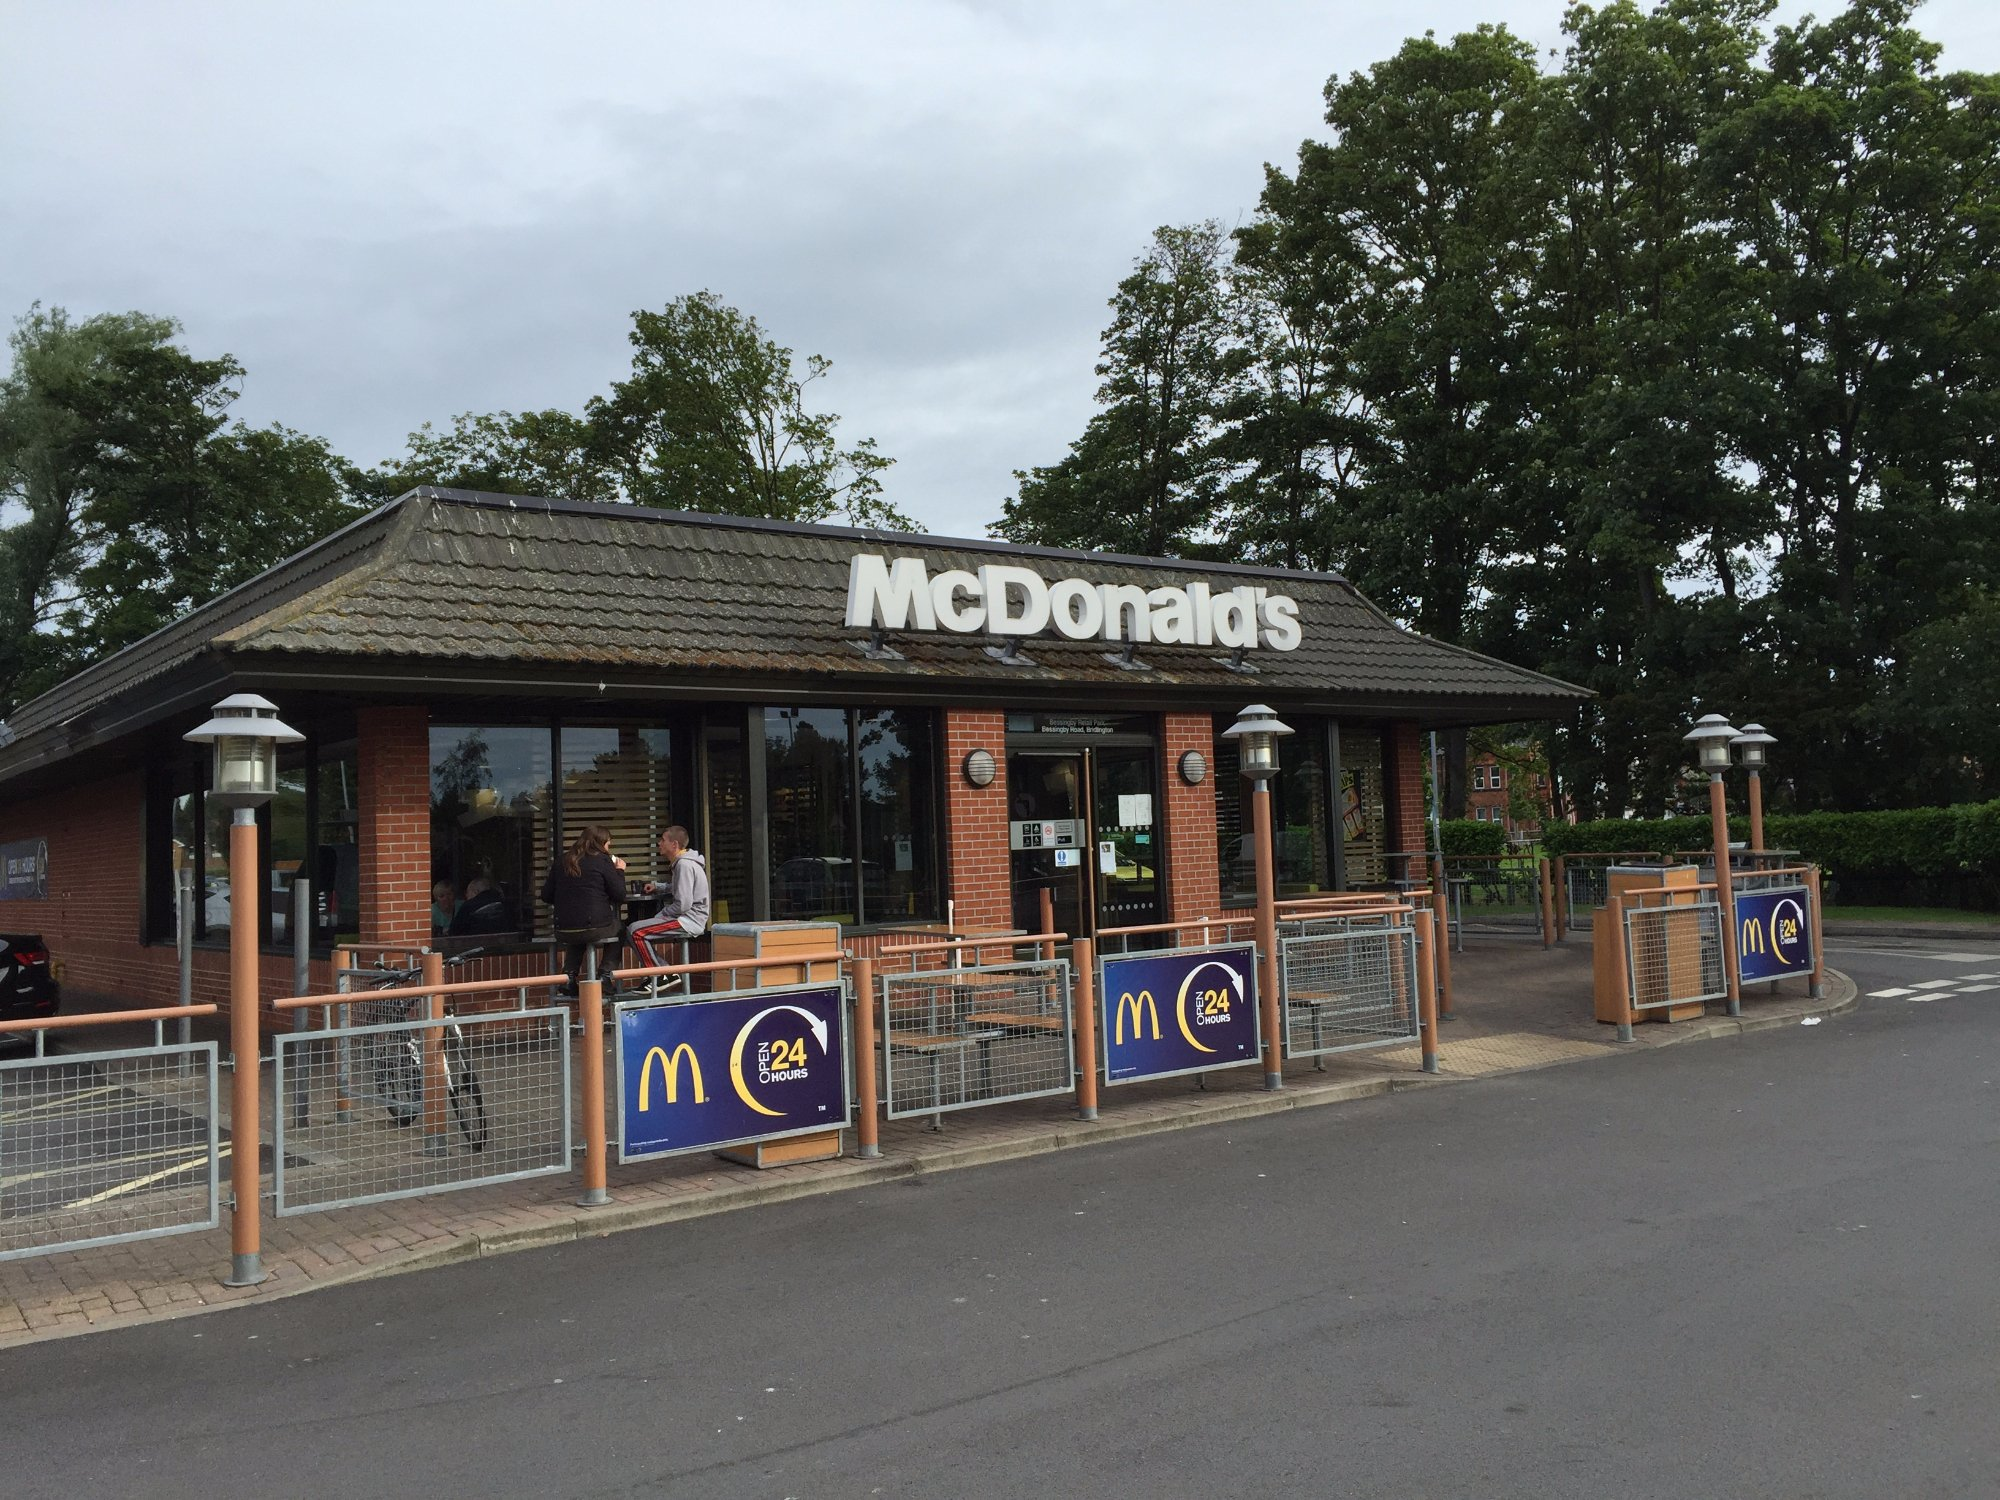 Mcdonald's Restaurants, Bridlington